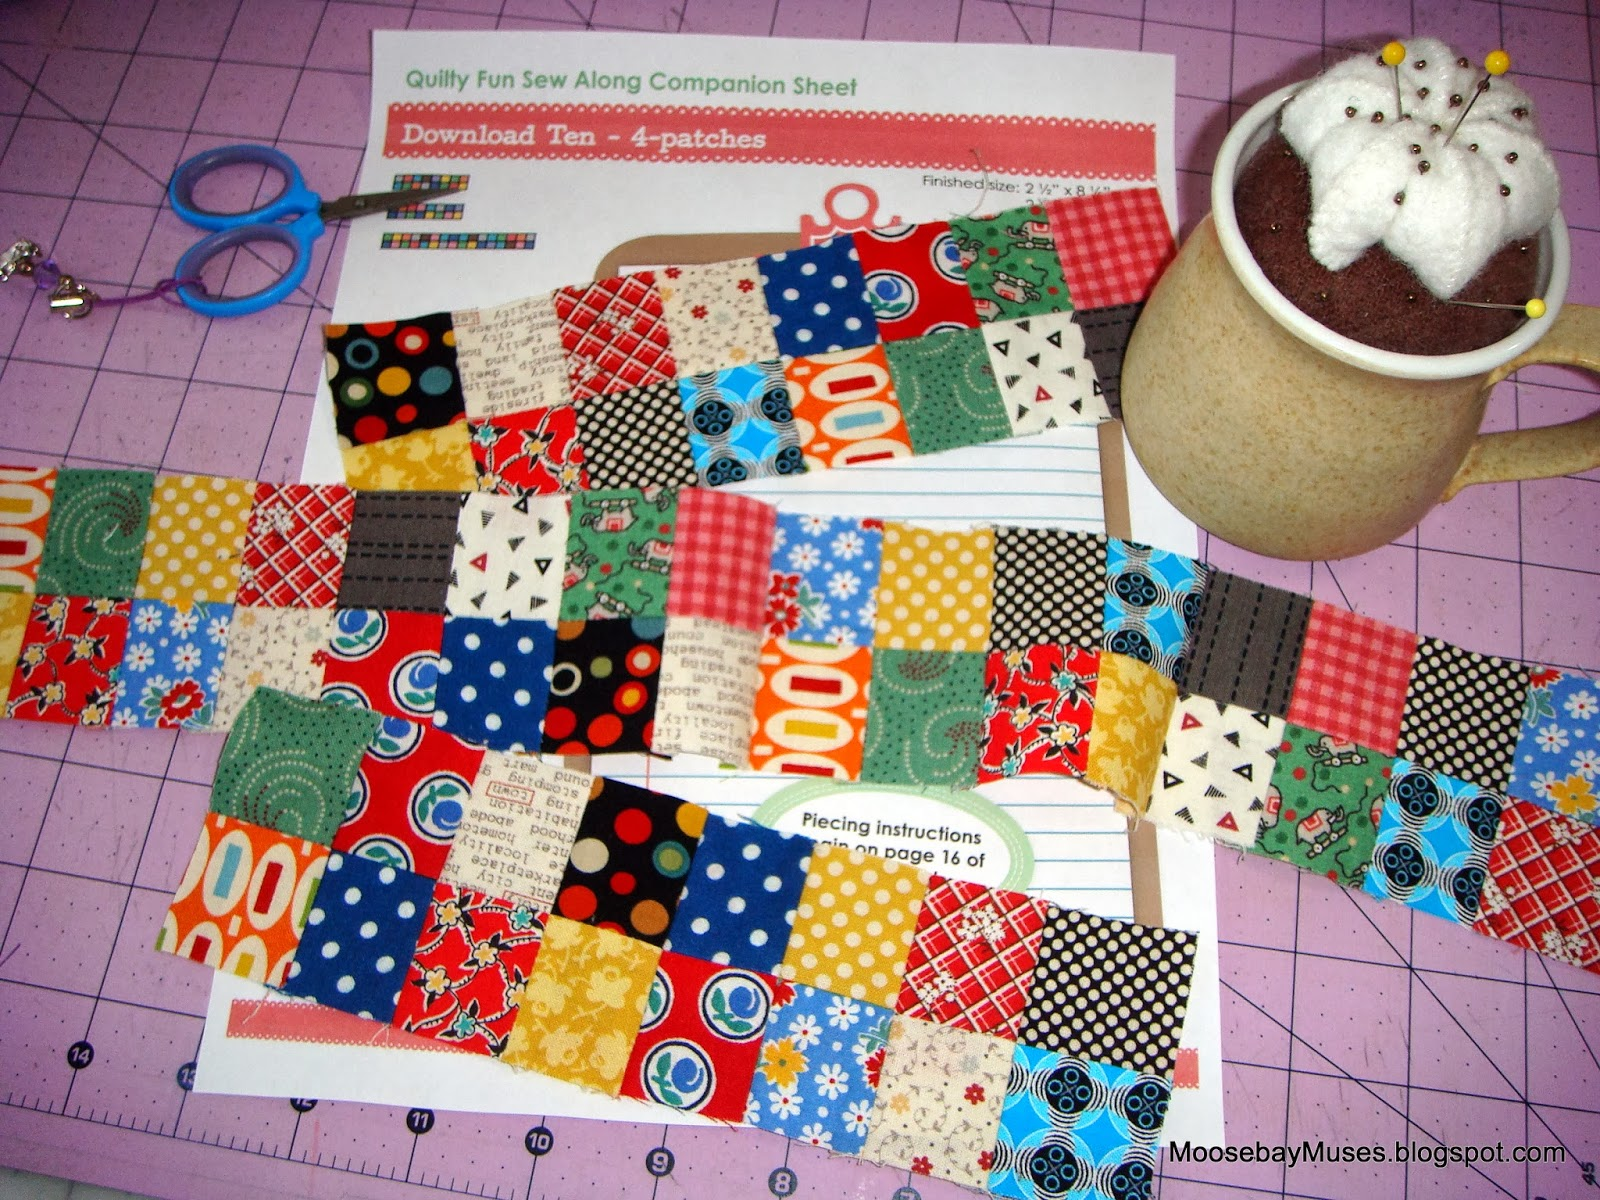 Quilty Fun Sew Along